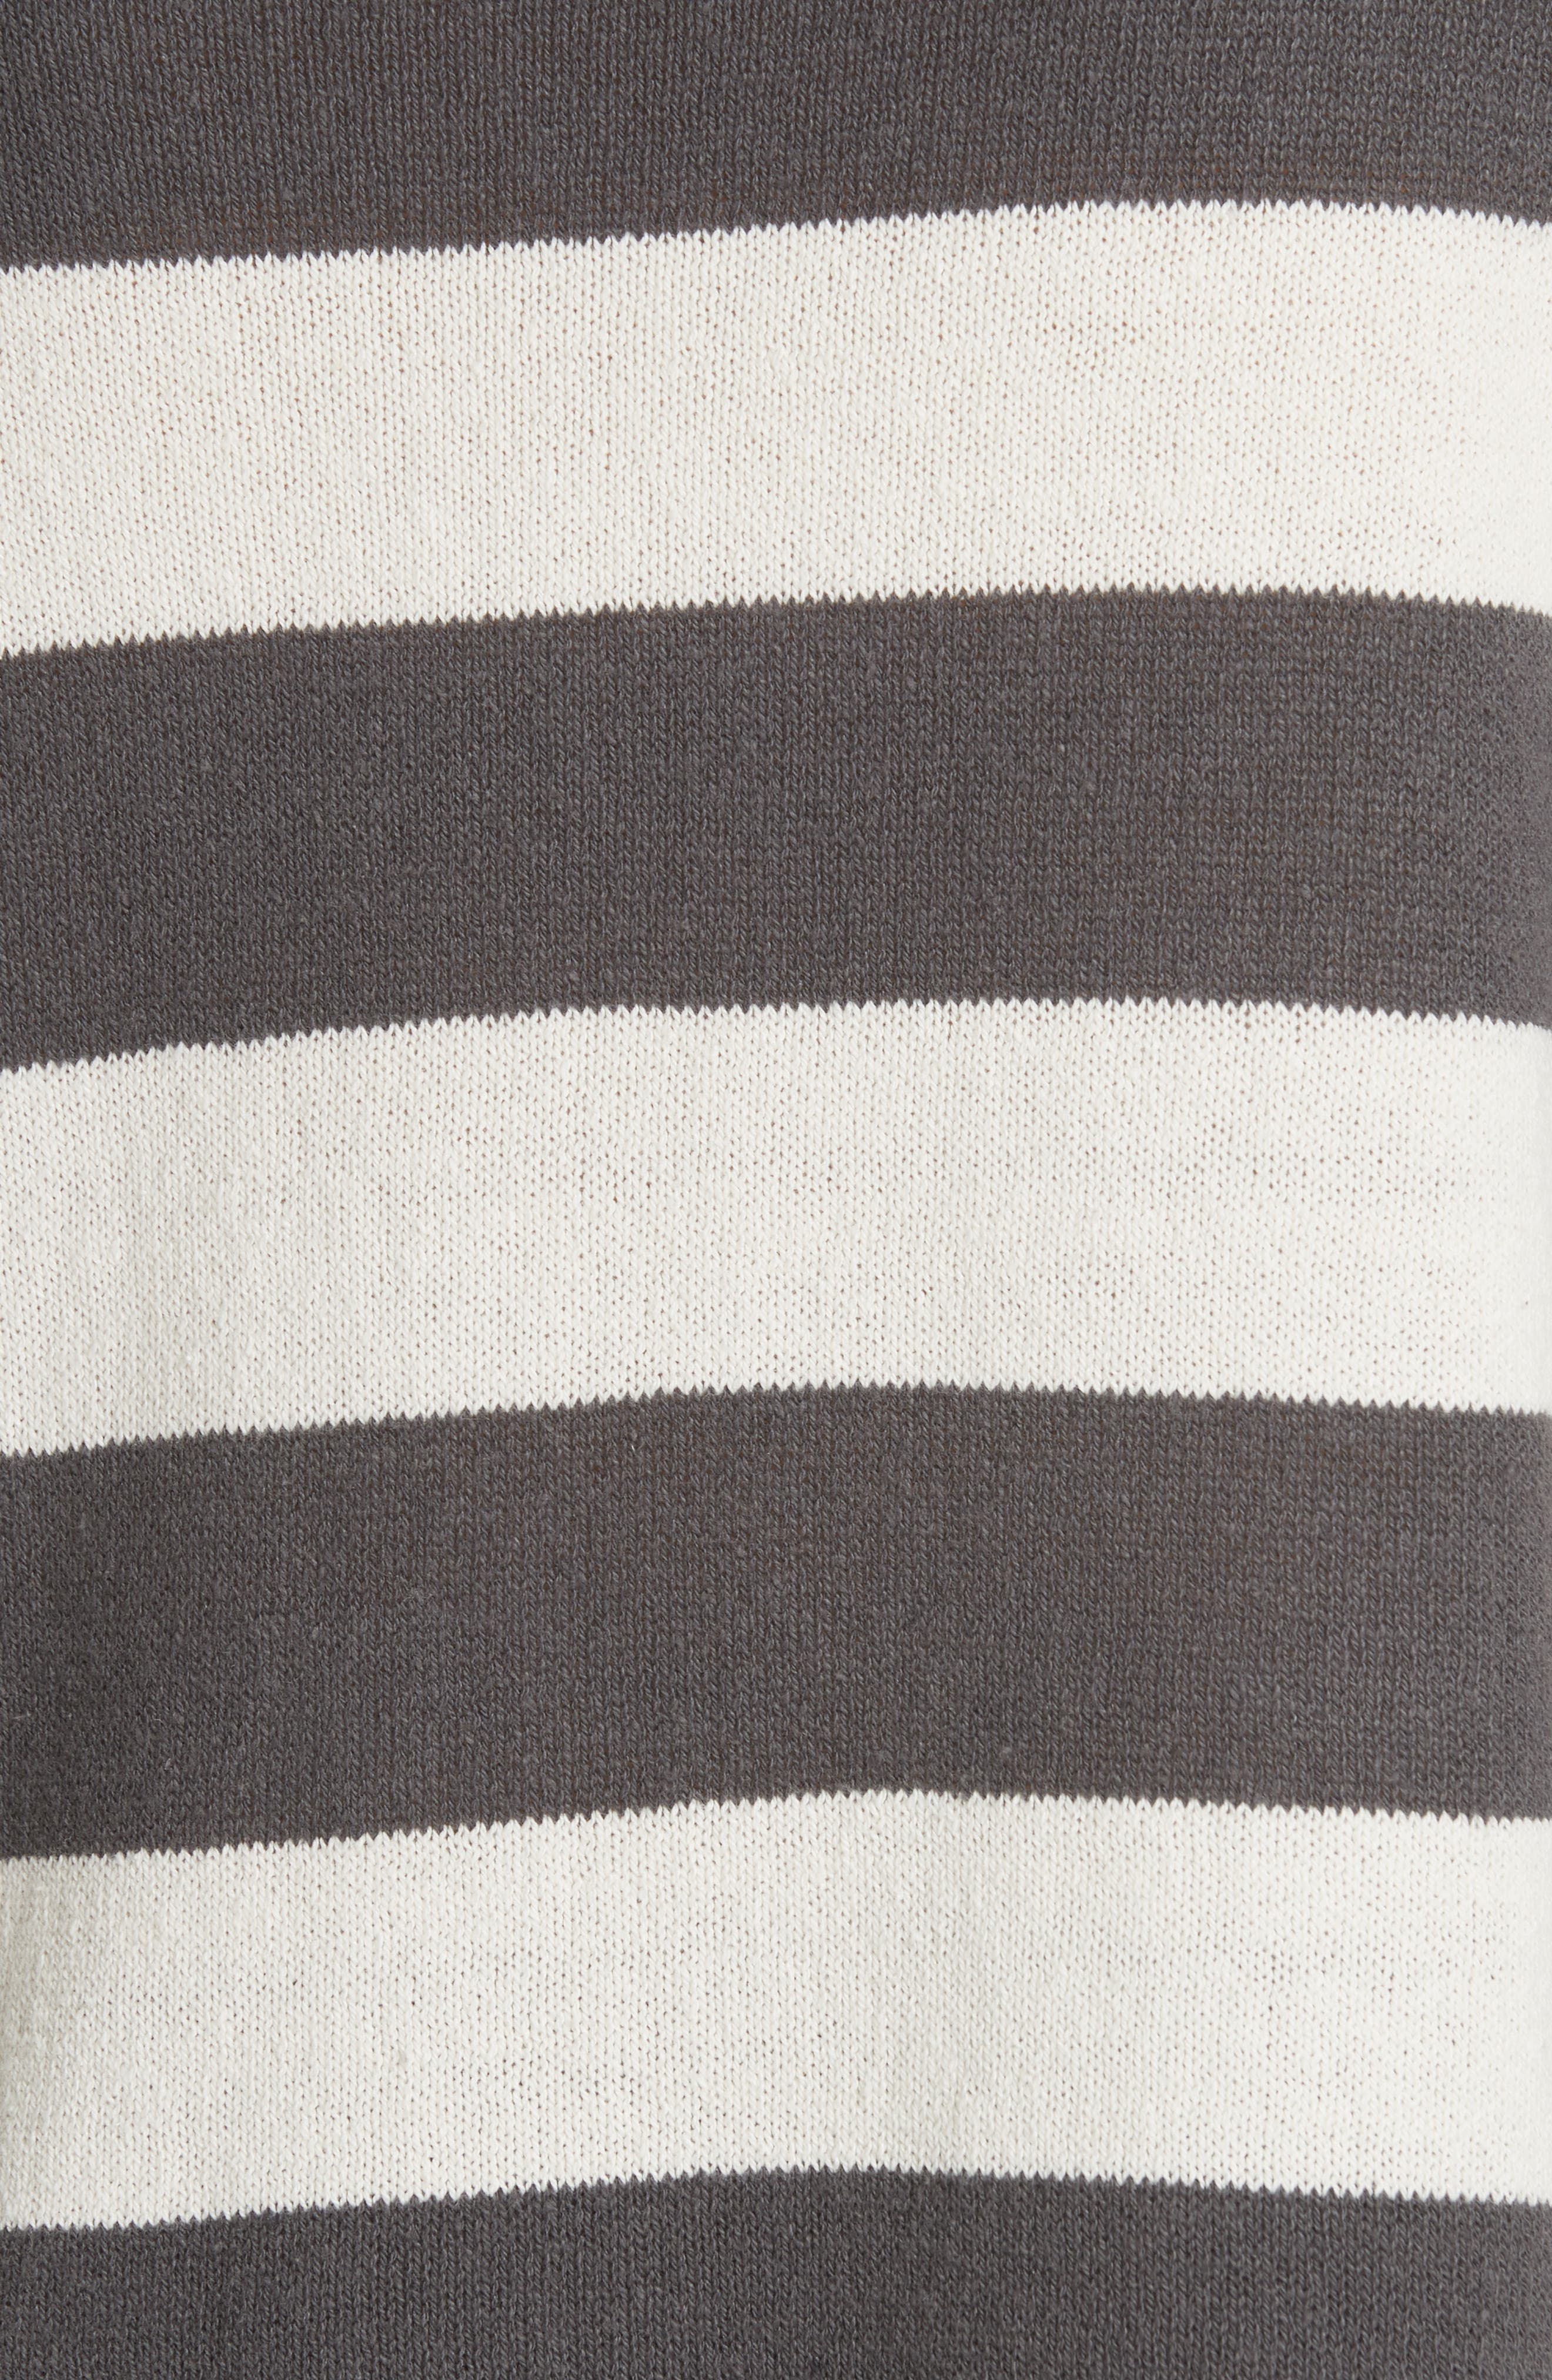 Stripe Cotton & Hemp Sweater,                             Alternate thumbnail 5, color,                             166